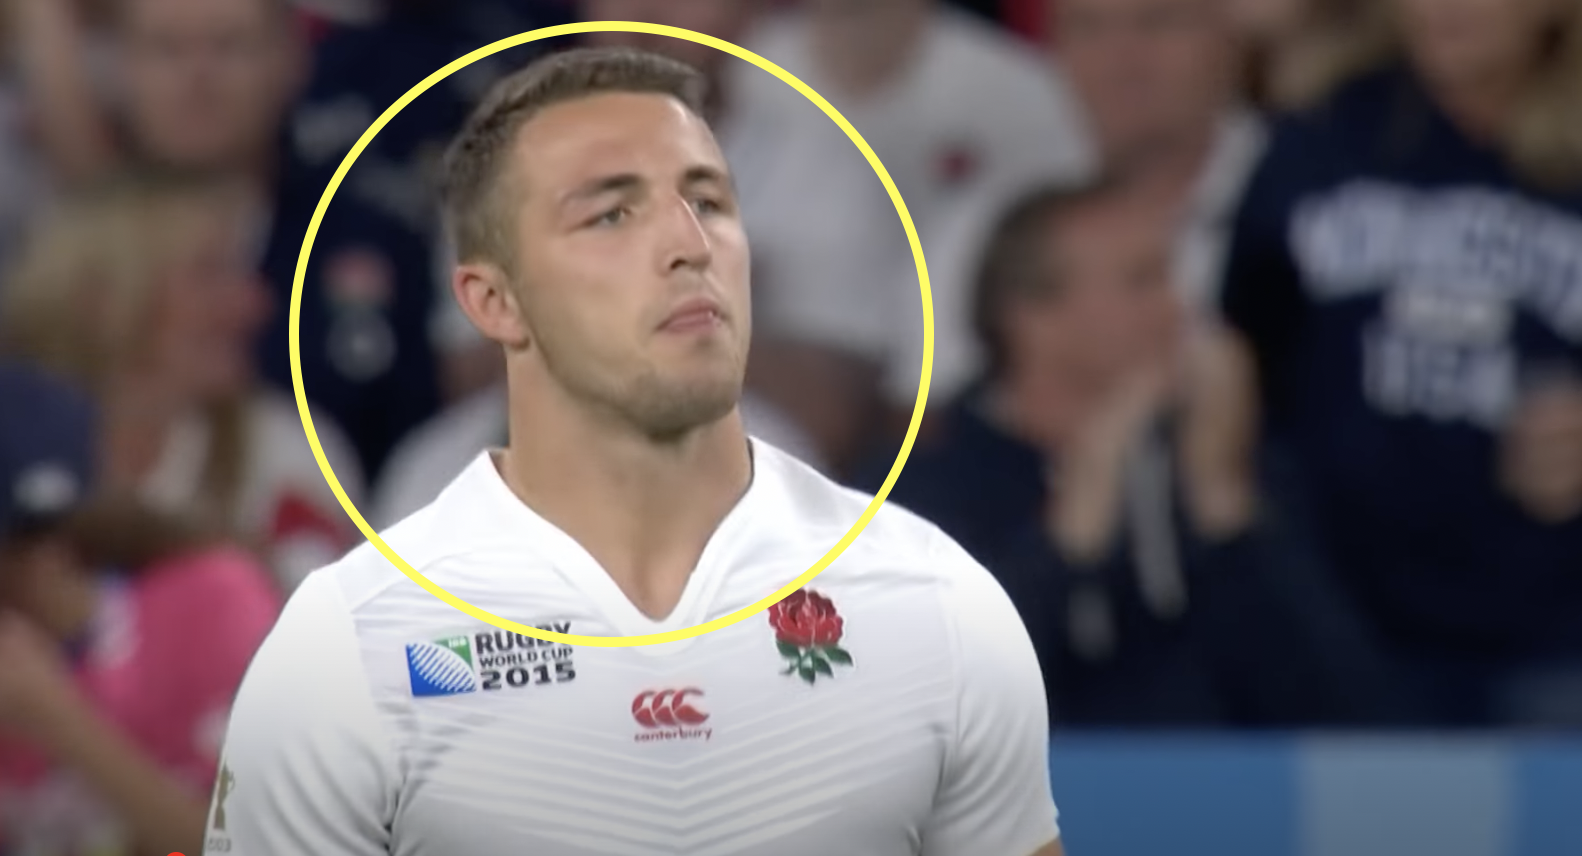 Sam Burgess reveals how he 'lost it all' after retirement